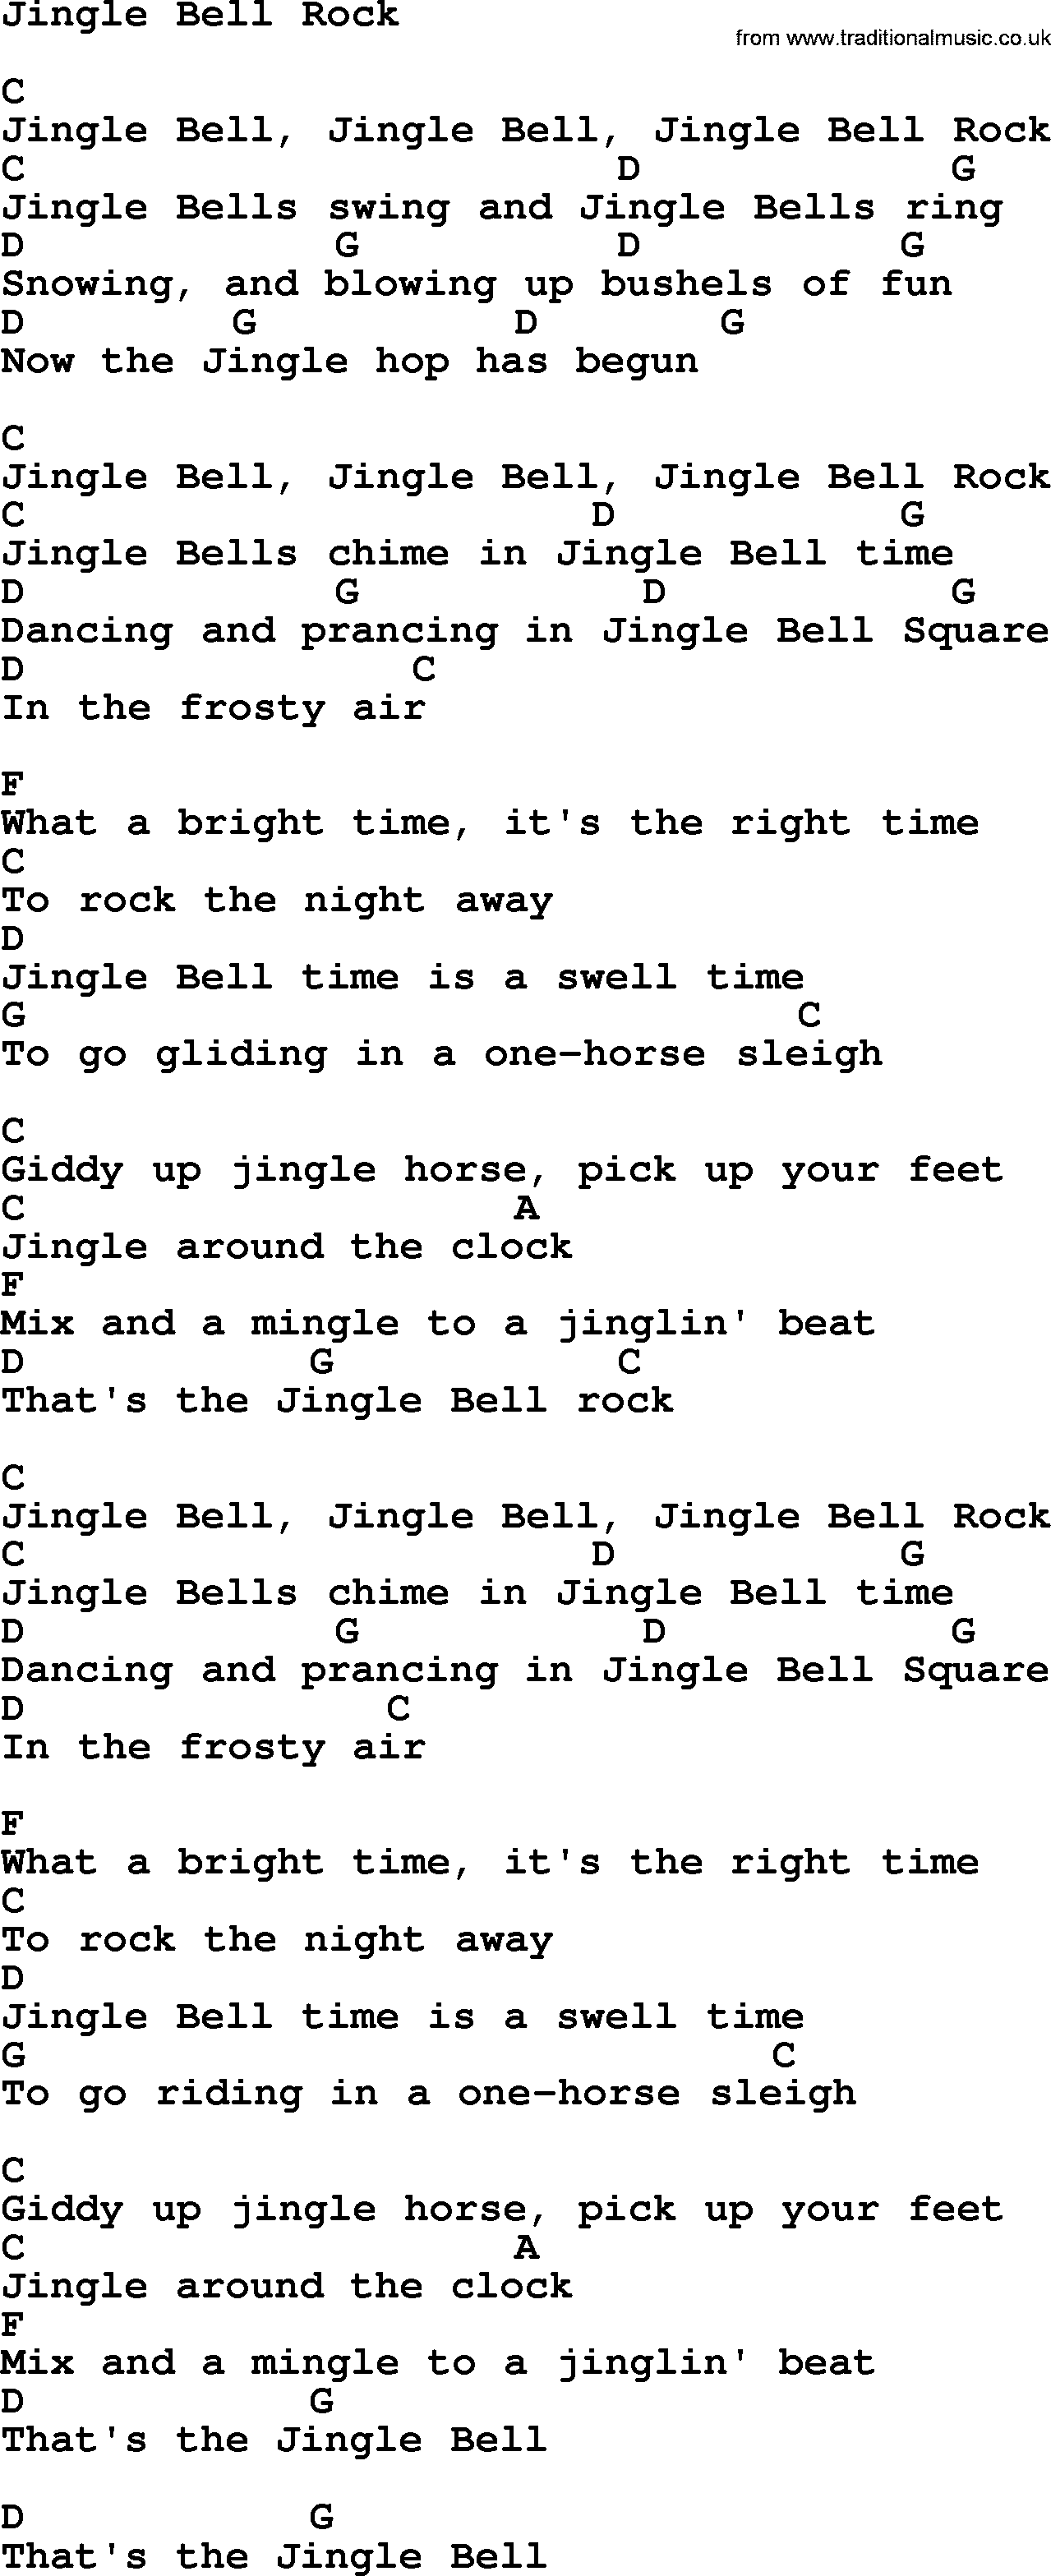 George Strait song: Jingle Bell Rock, lyrics and chords | Songs in ...